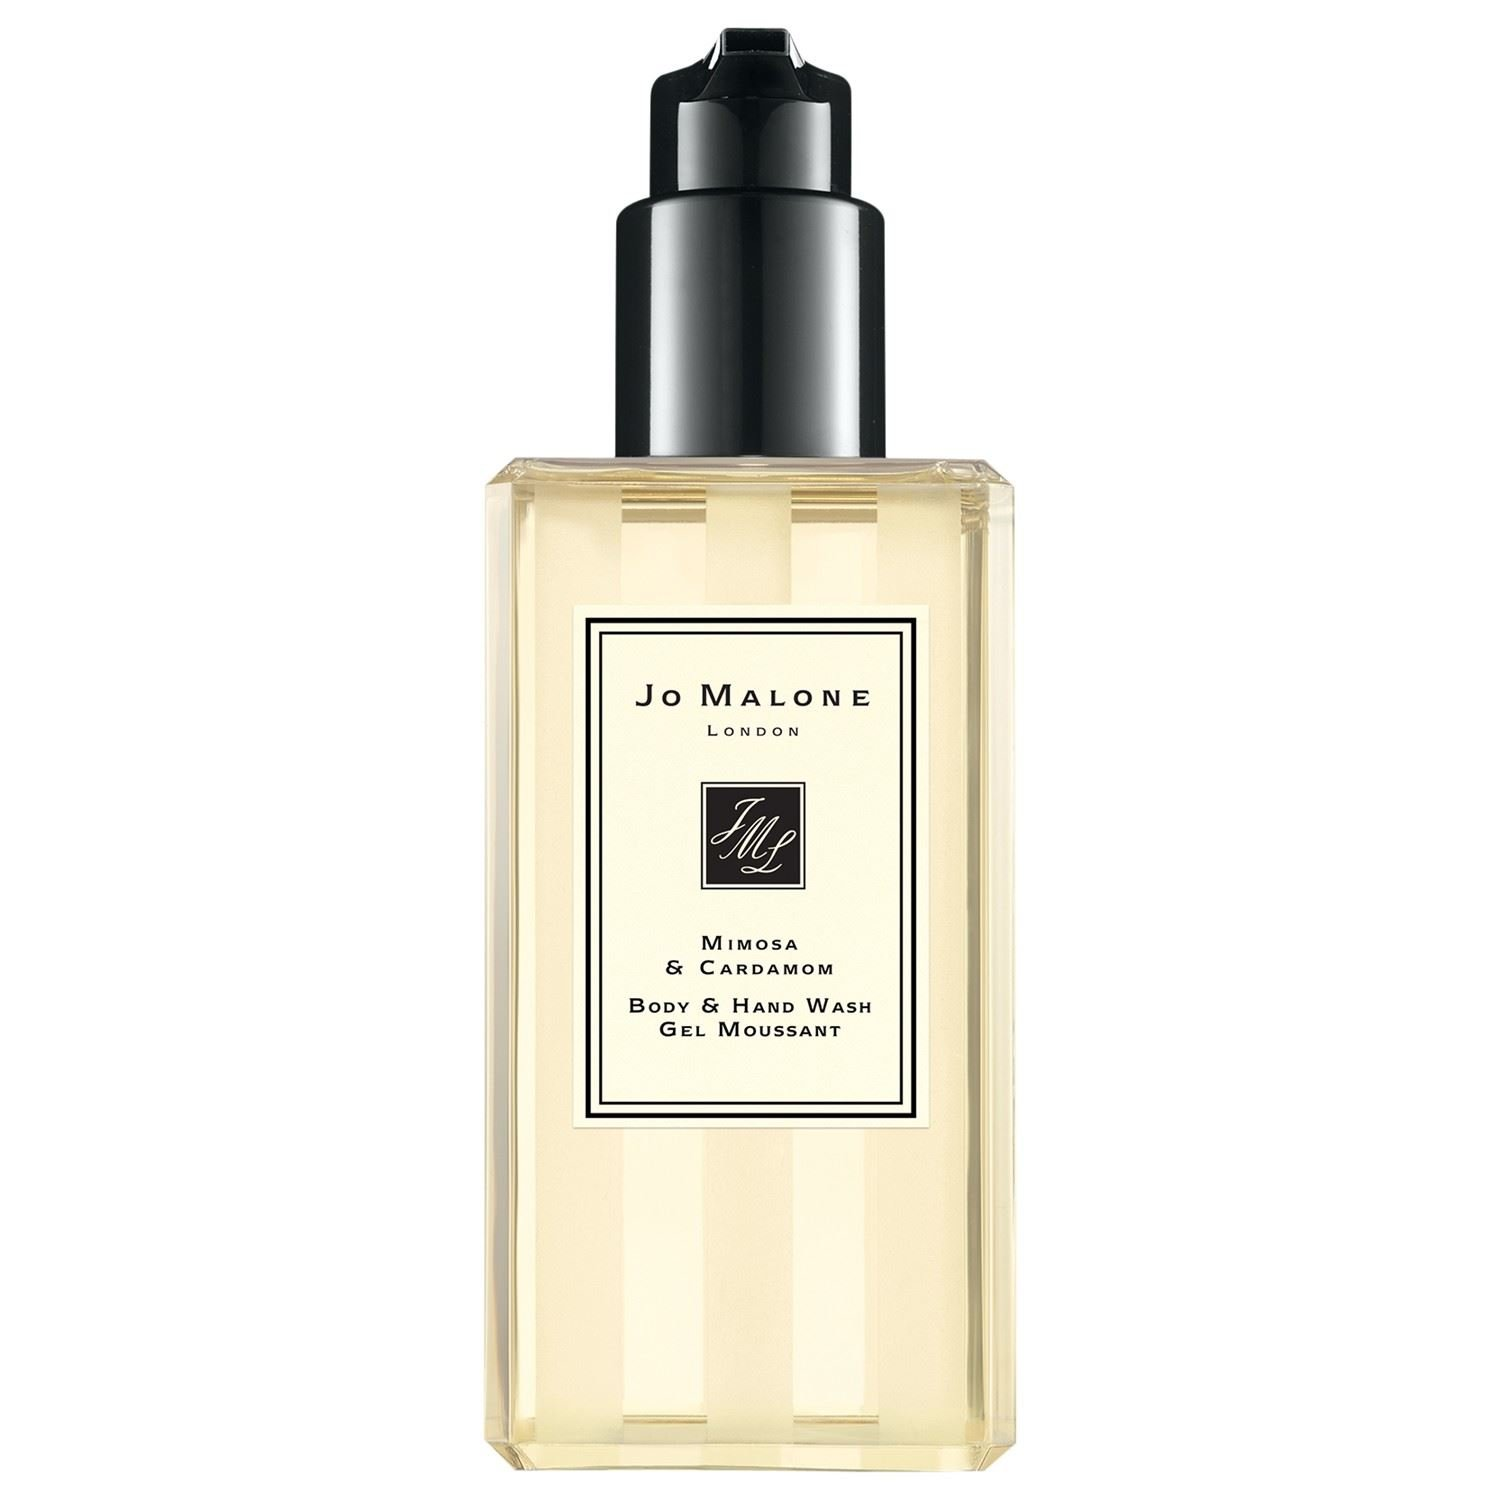 Jo Malone London Mimosa & Cardamom Body & Hand Wash 250ml (PACK OF 2)